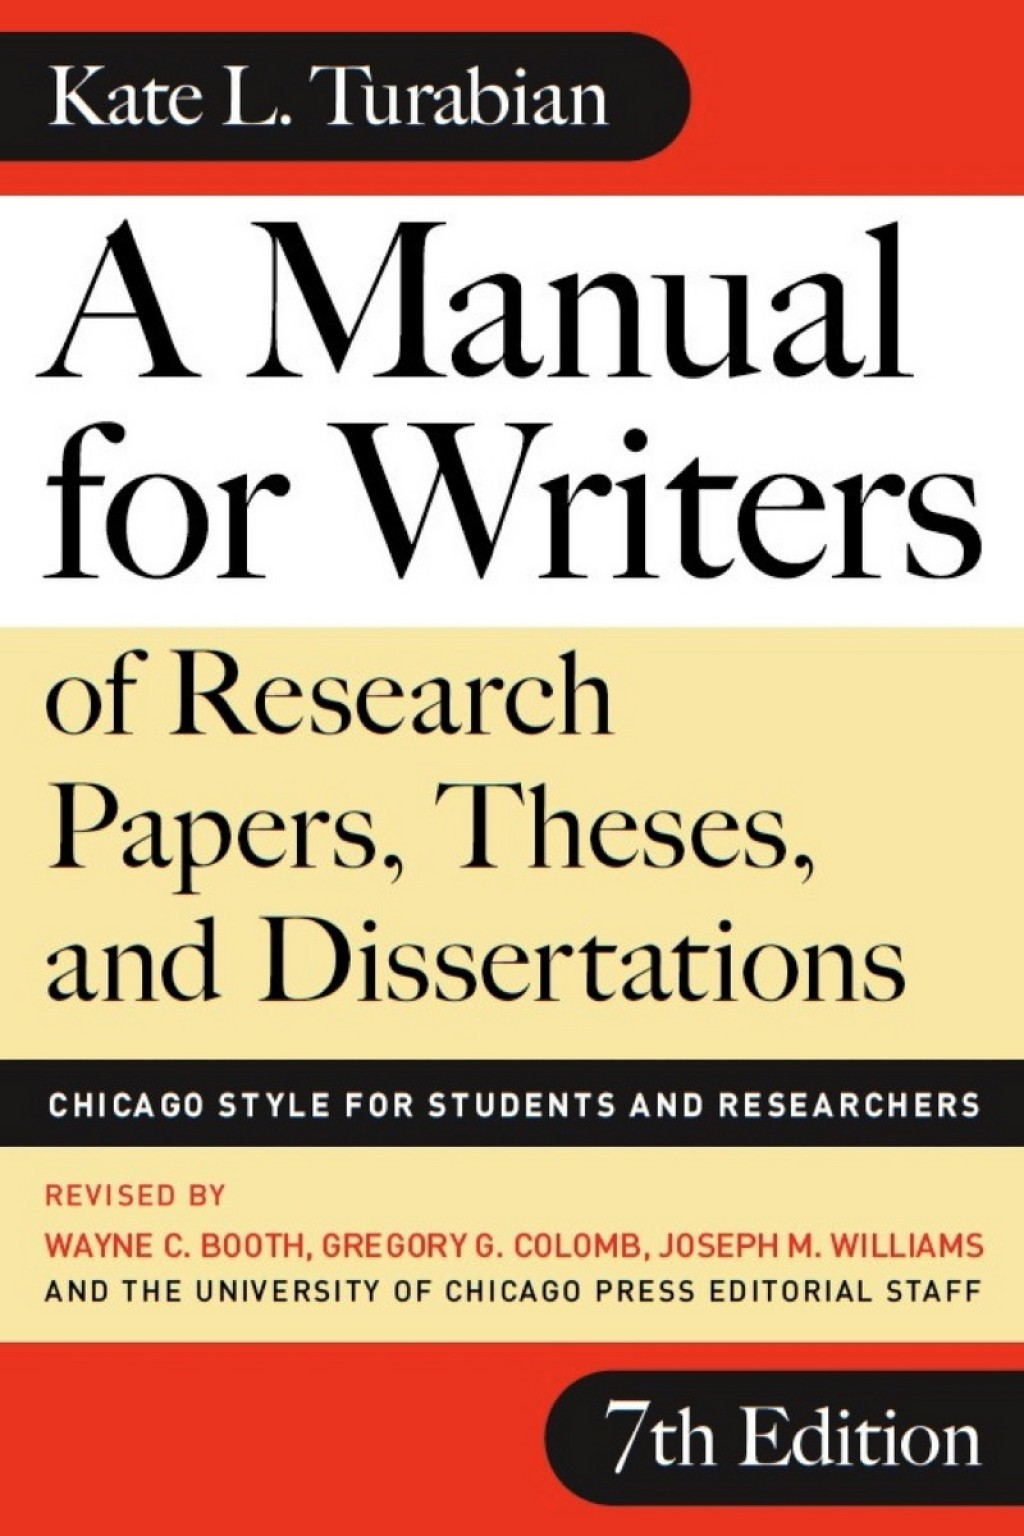 008 Manual For Writers Of Researchs Theses And Dissertations Frontcover Magnificent Research Papers 8th 13 A 9th Edition Apa Large